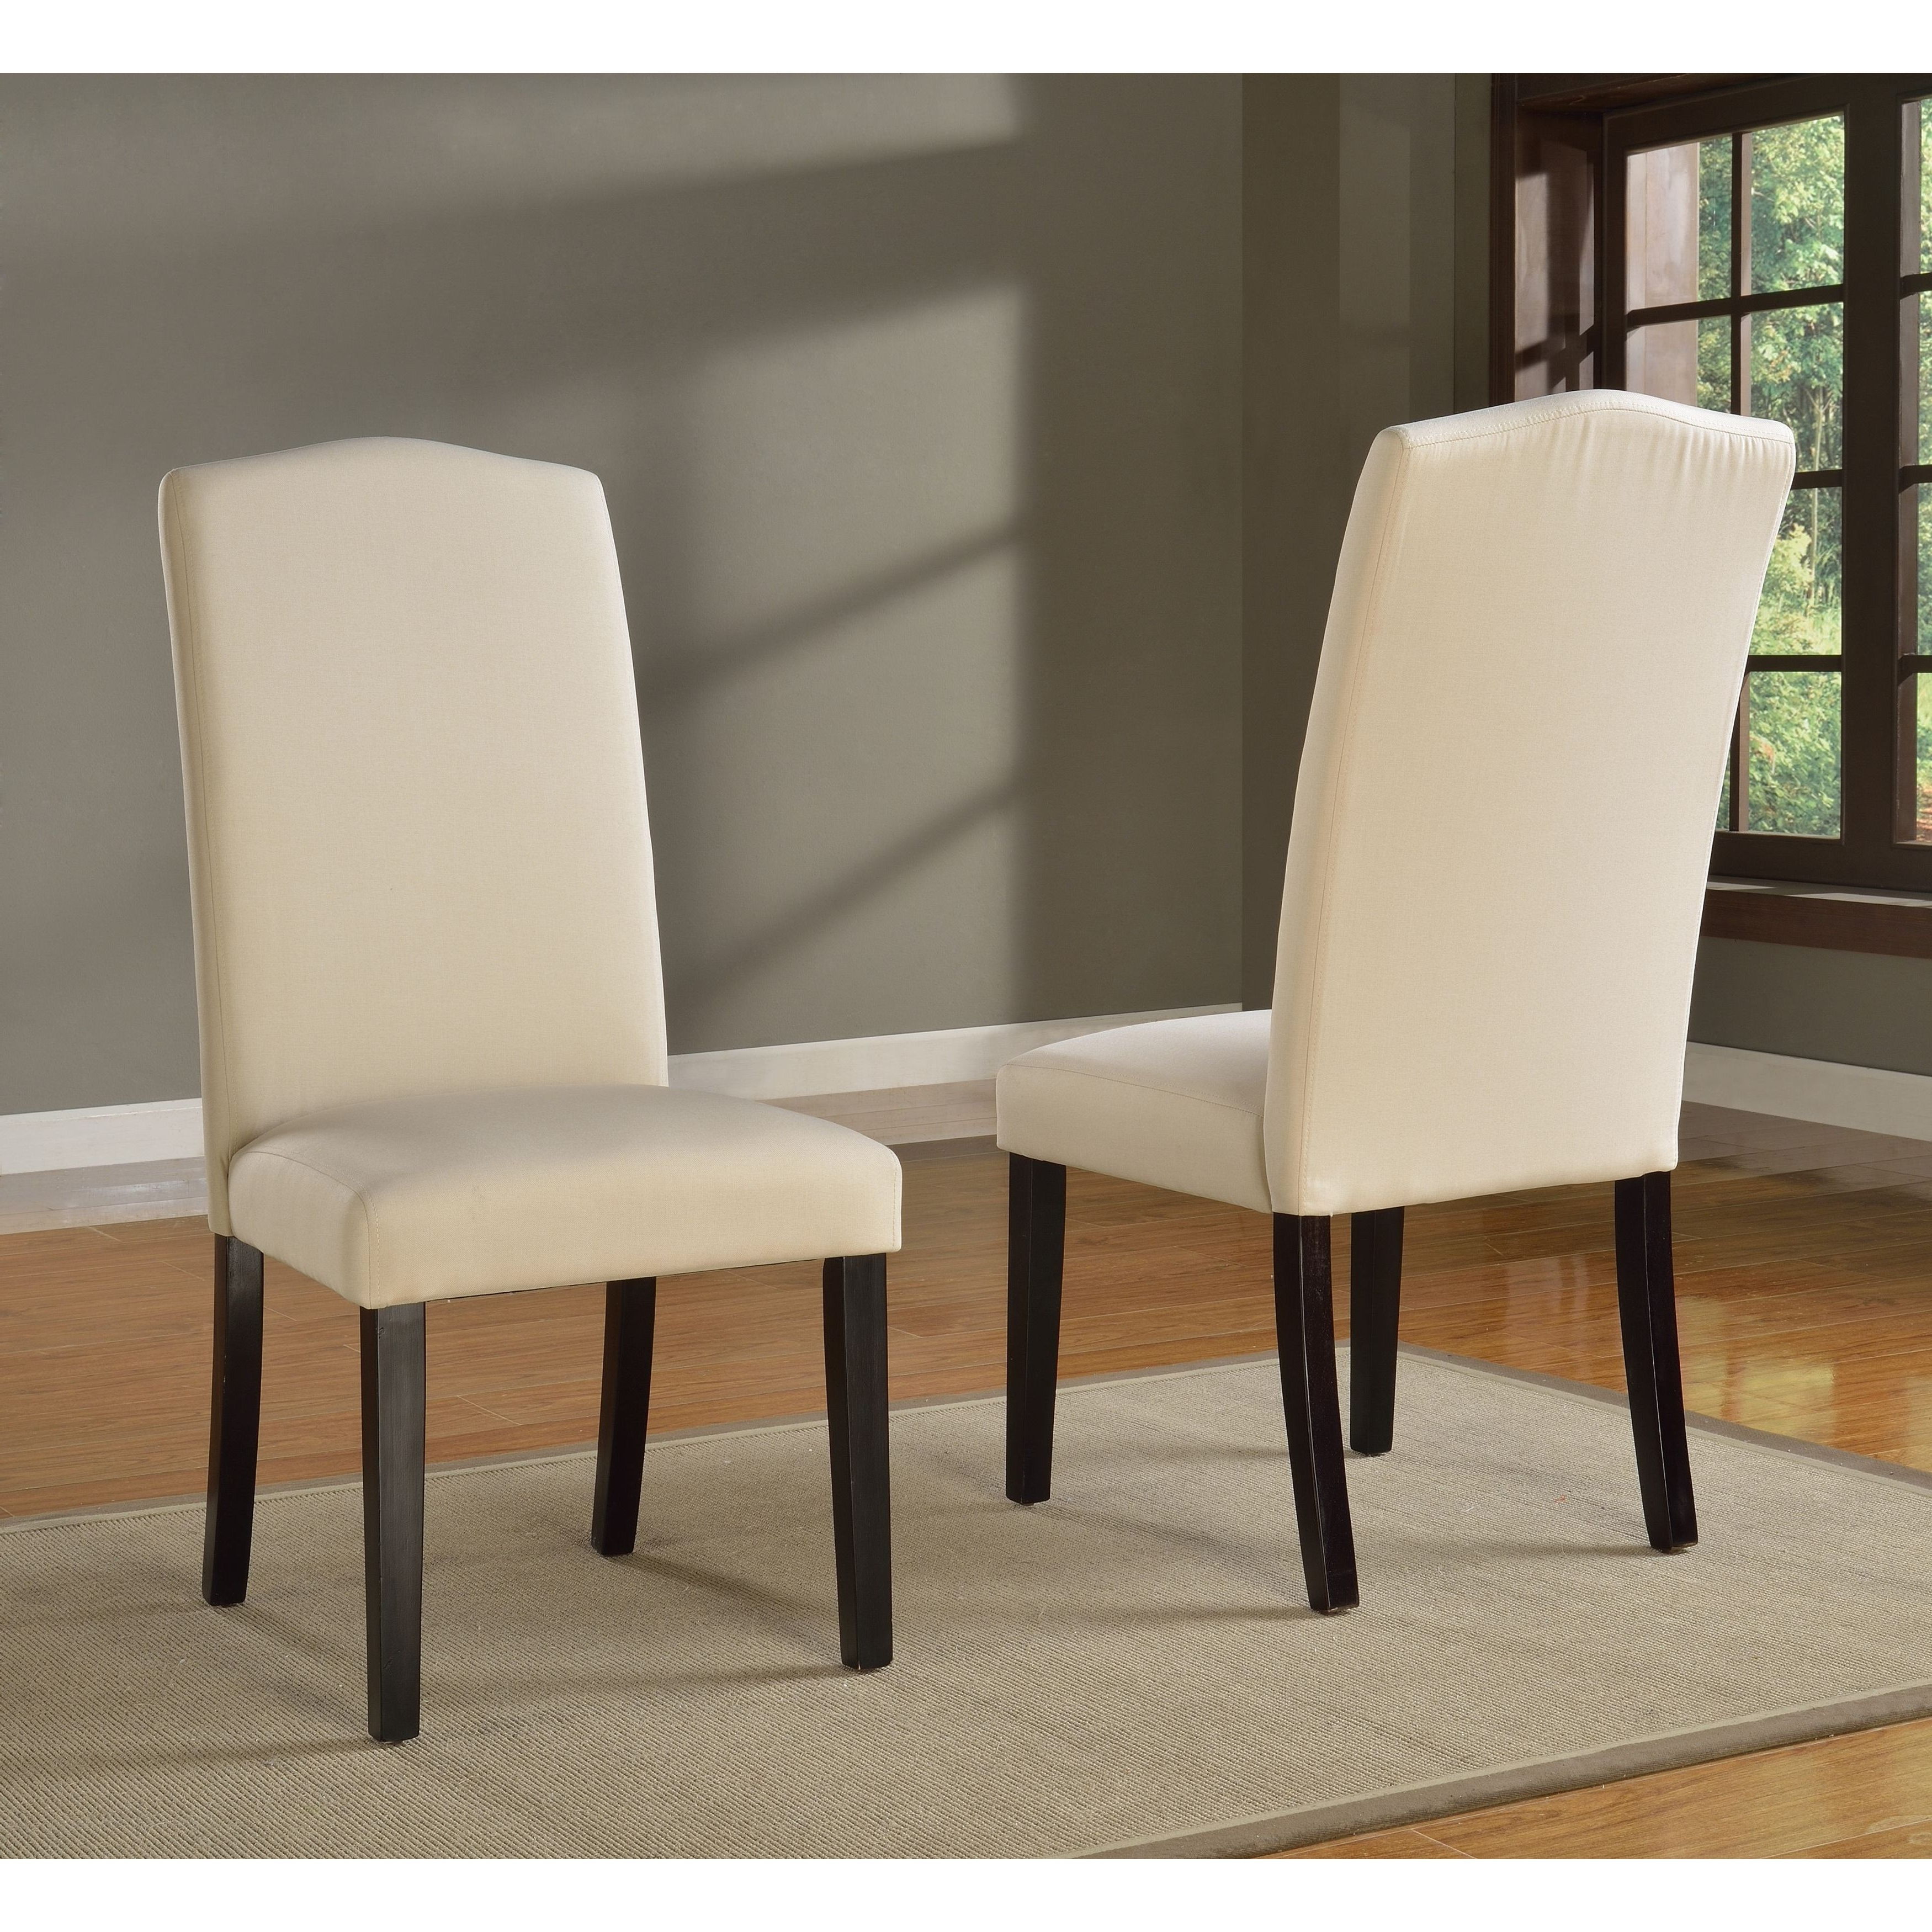 Trendy Garten Marble Skirted Side Chairs Set Of 2 Inside Shop Domusindo Slipcovered Camelback Dining Chair (Set Of 2) – Free (View 6 of 20)